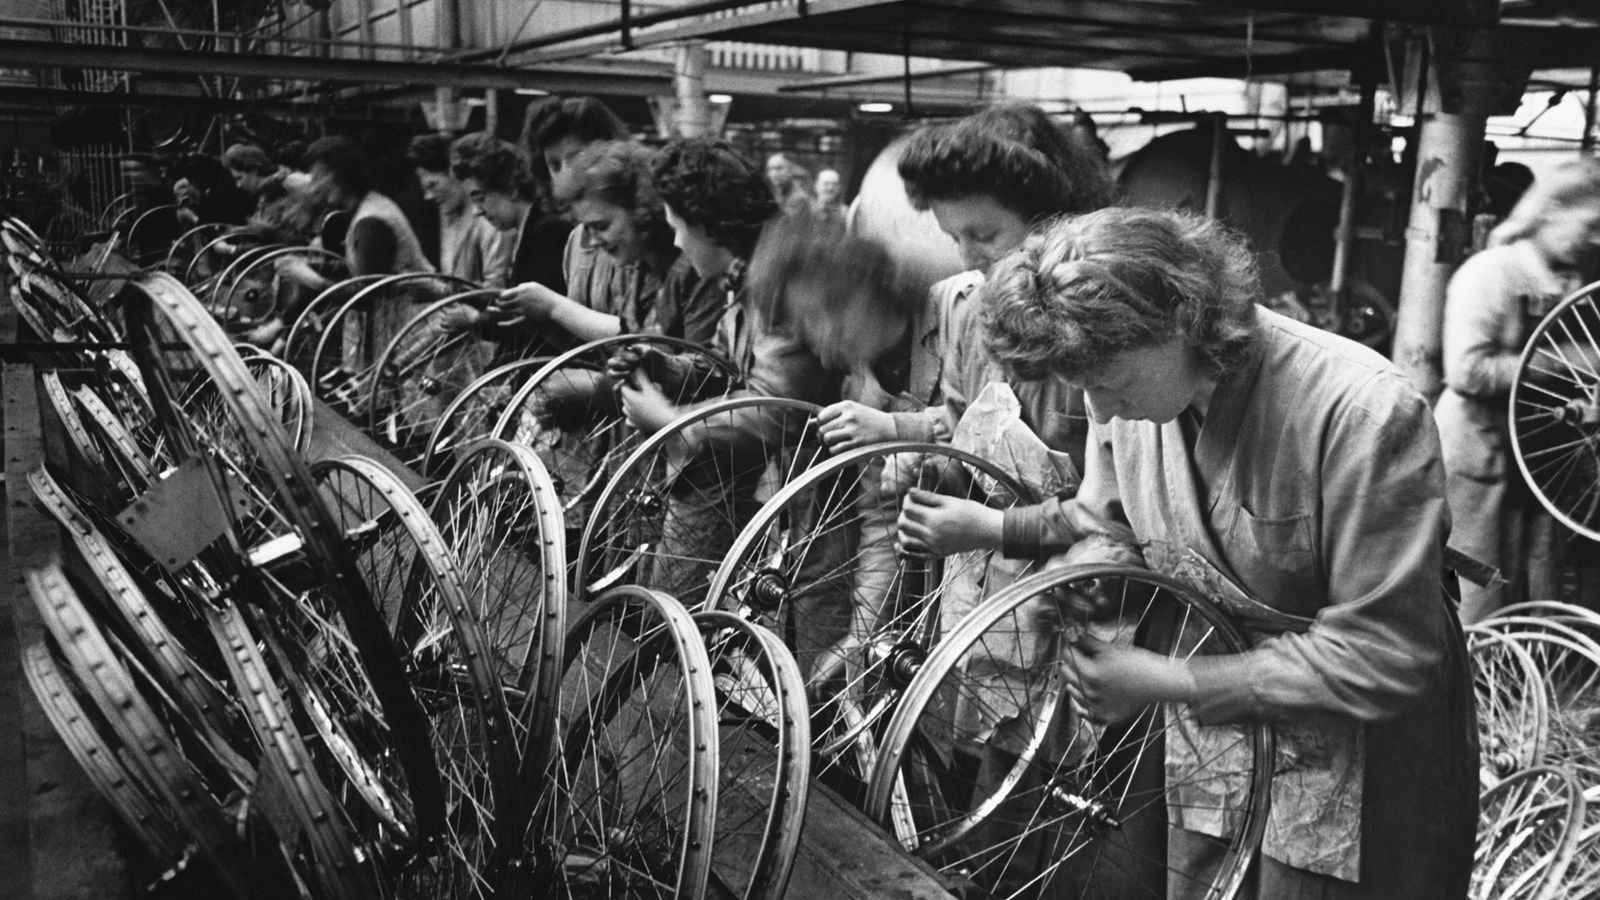 Women workers build bicycle wheels at the Hercules Cycle factory in Birmingham, England in the 1940s. ...